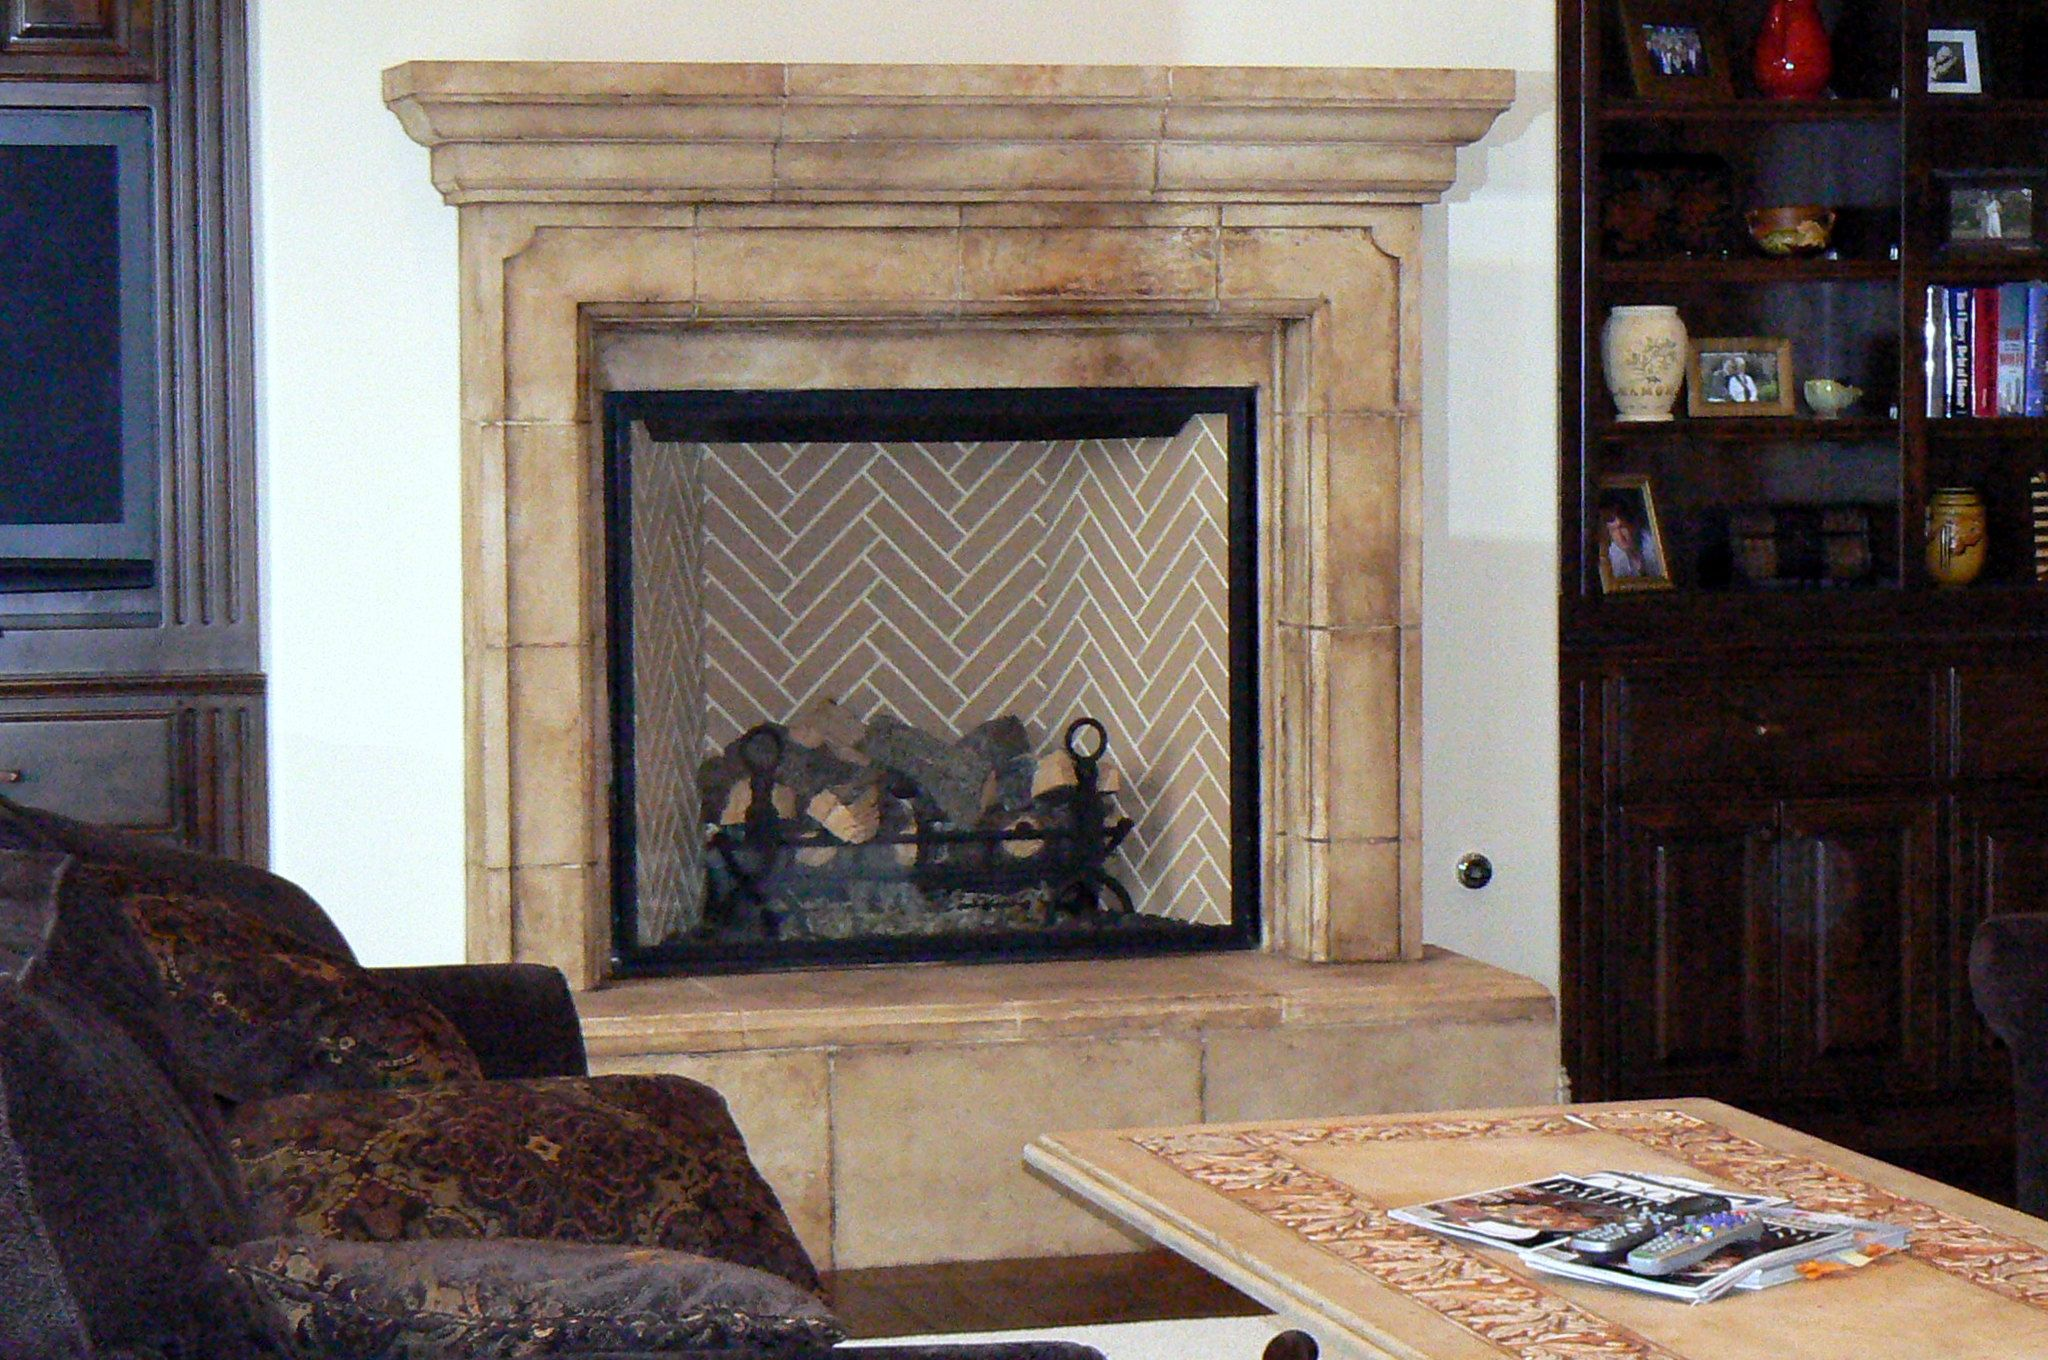 oaks cast fireplace thousand stone cal surround california ca precast